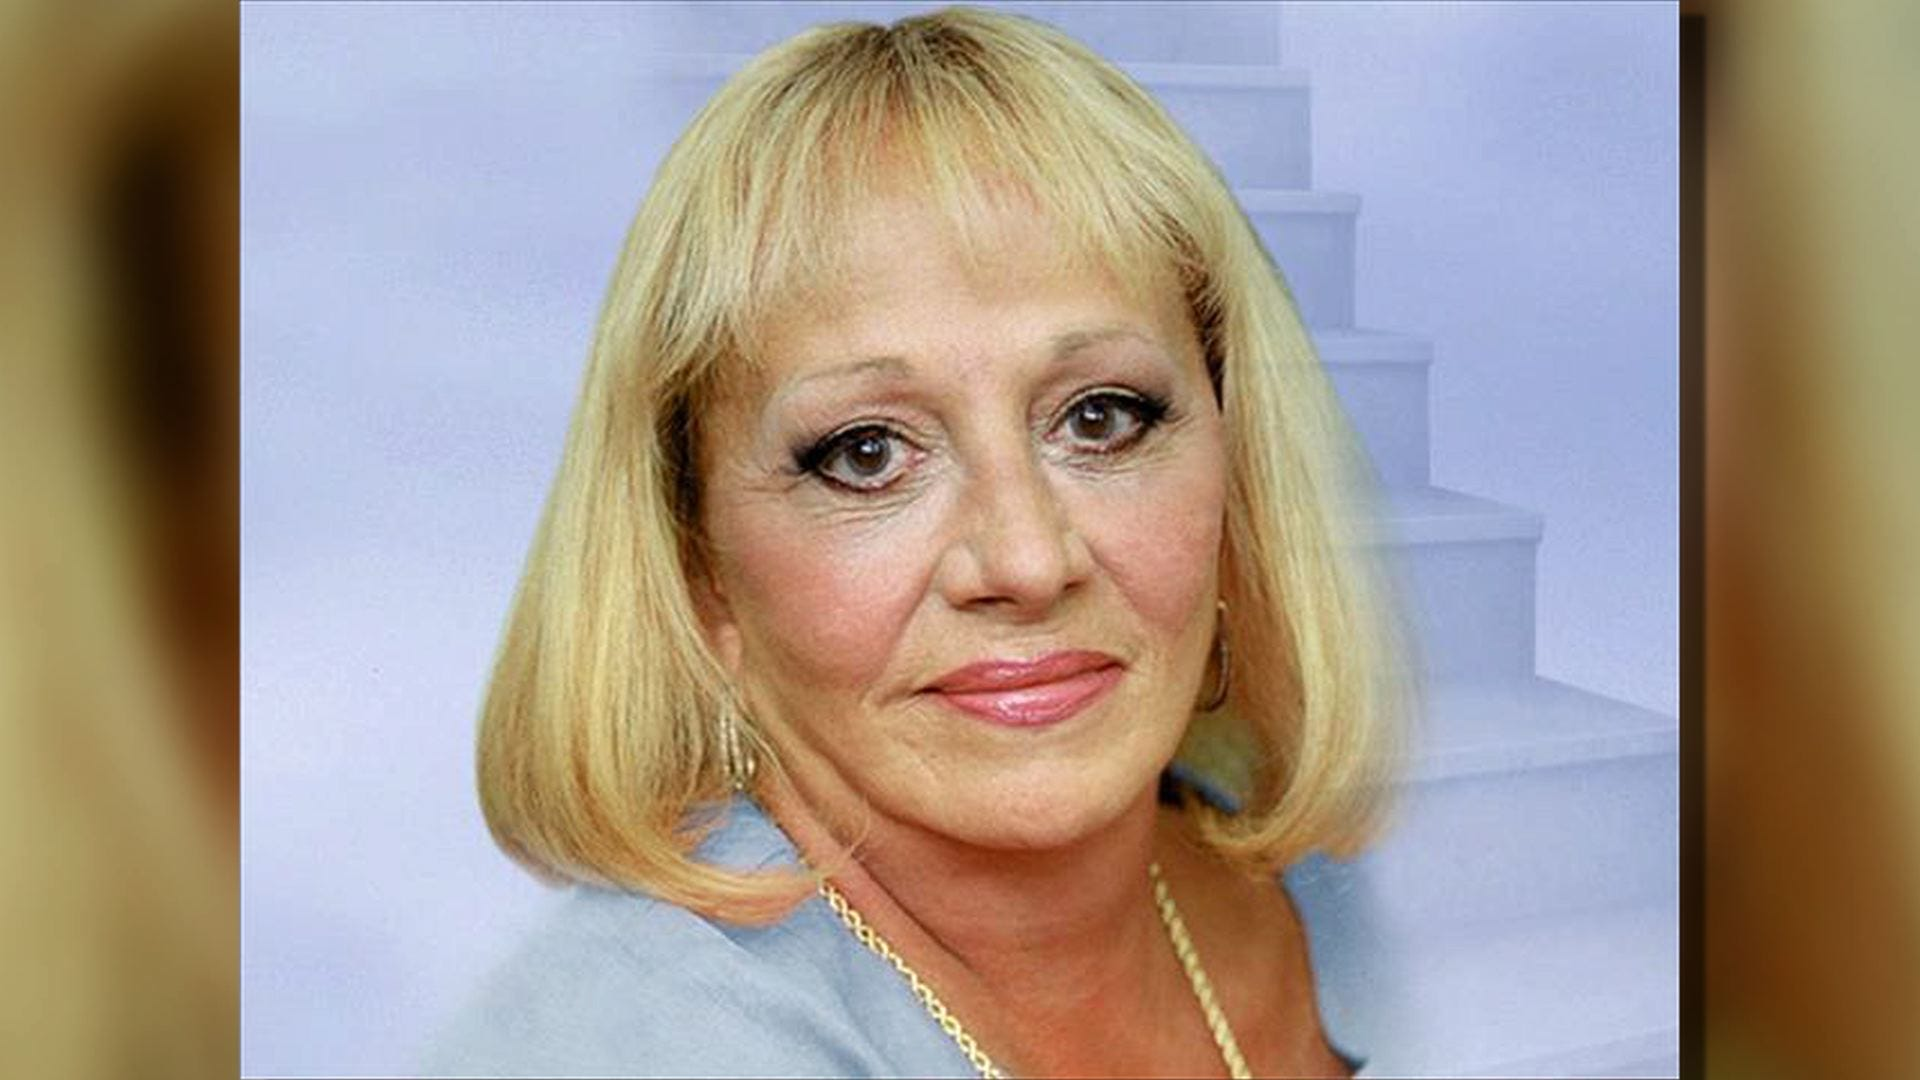 hosts USA NOW for May 10, 2013, covering heat on psychic Sylvia Browne